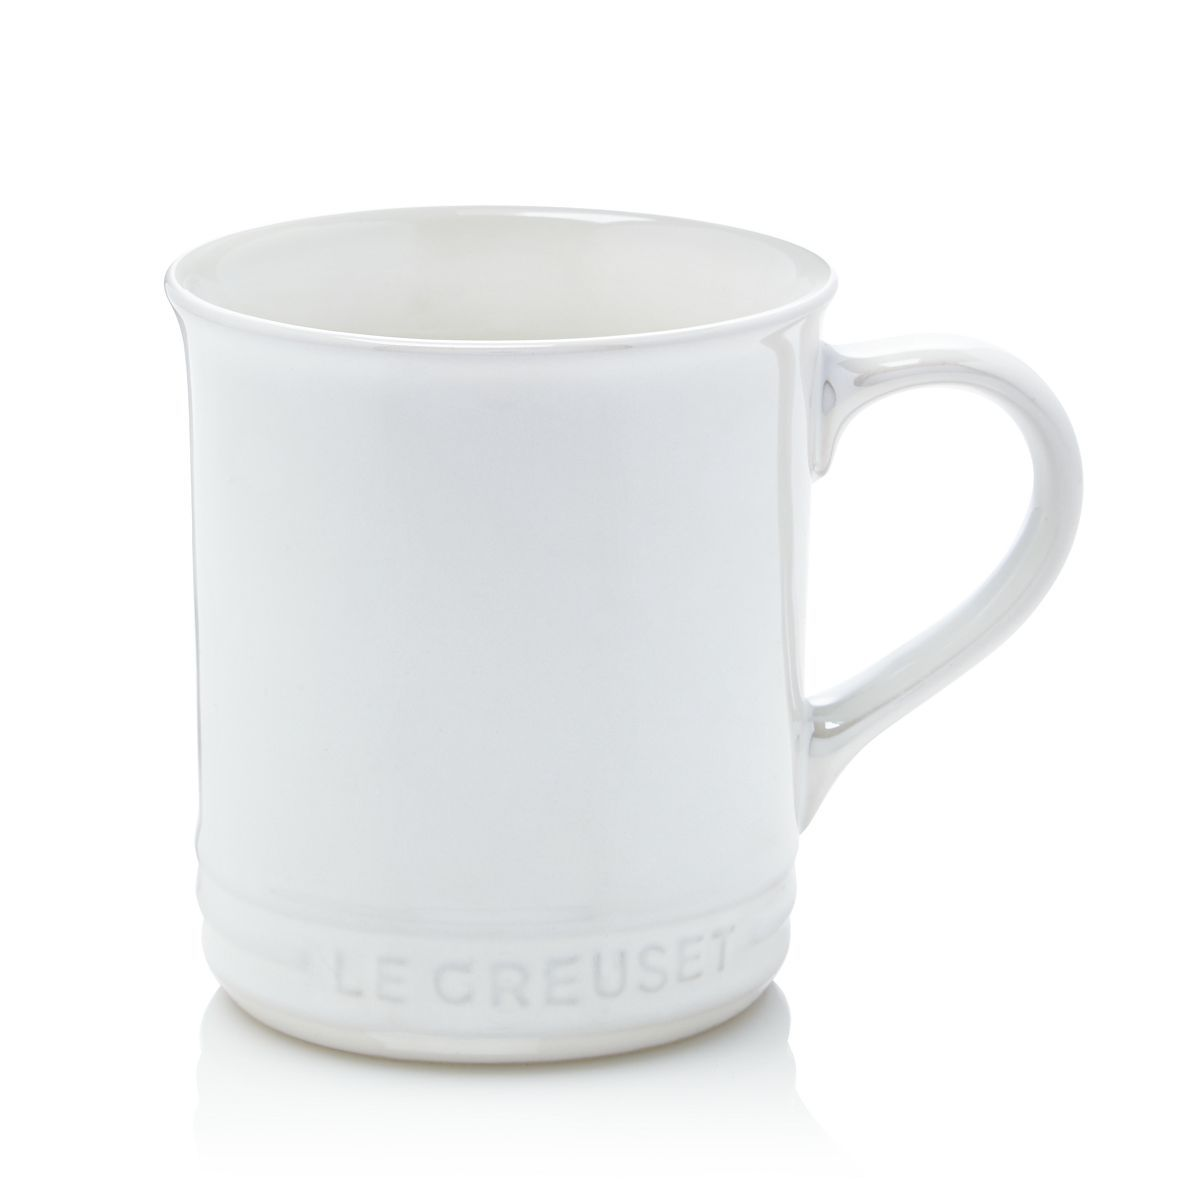 Le Creuset Metallics Collection Mug